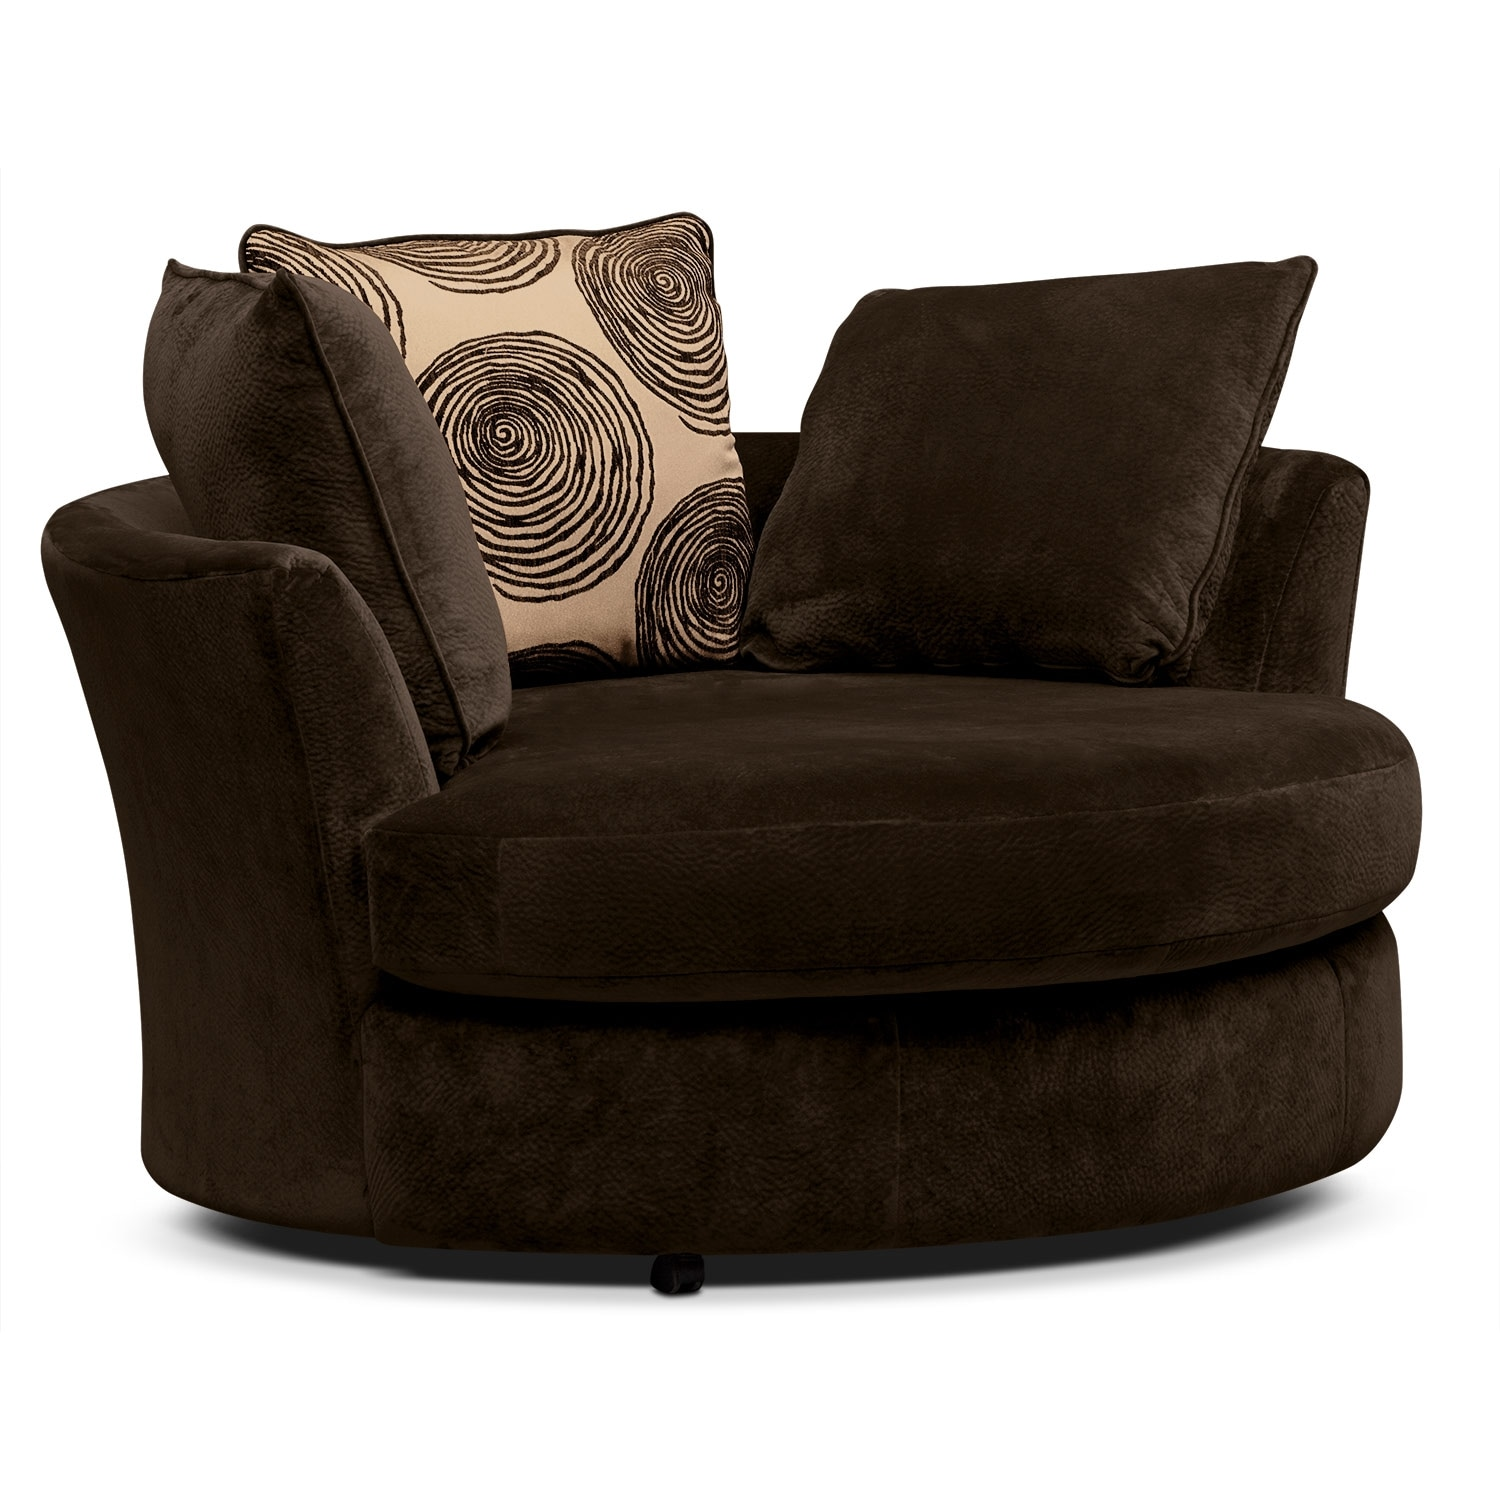 swivel chair in living room chiropractic wobble catalina chocolate 2 pc w